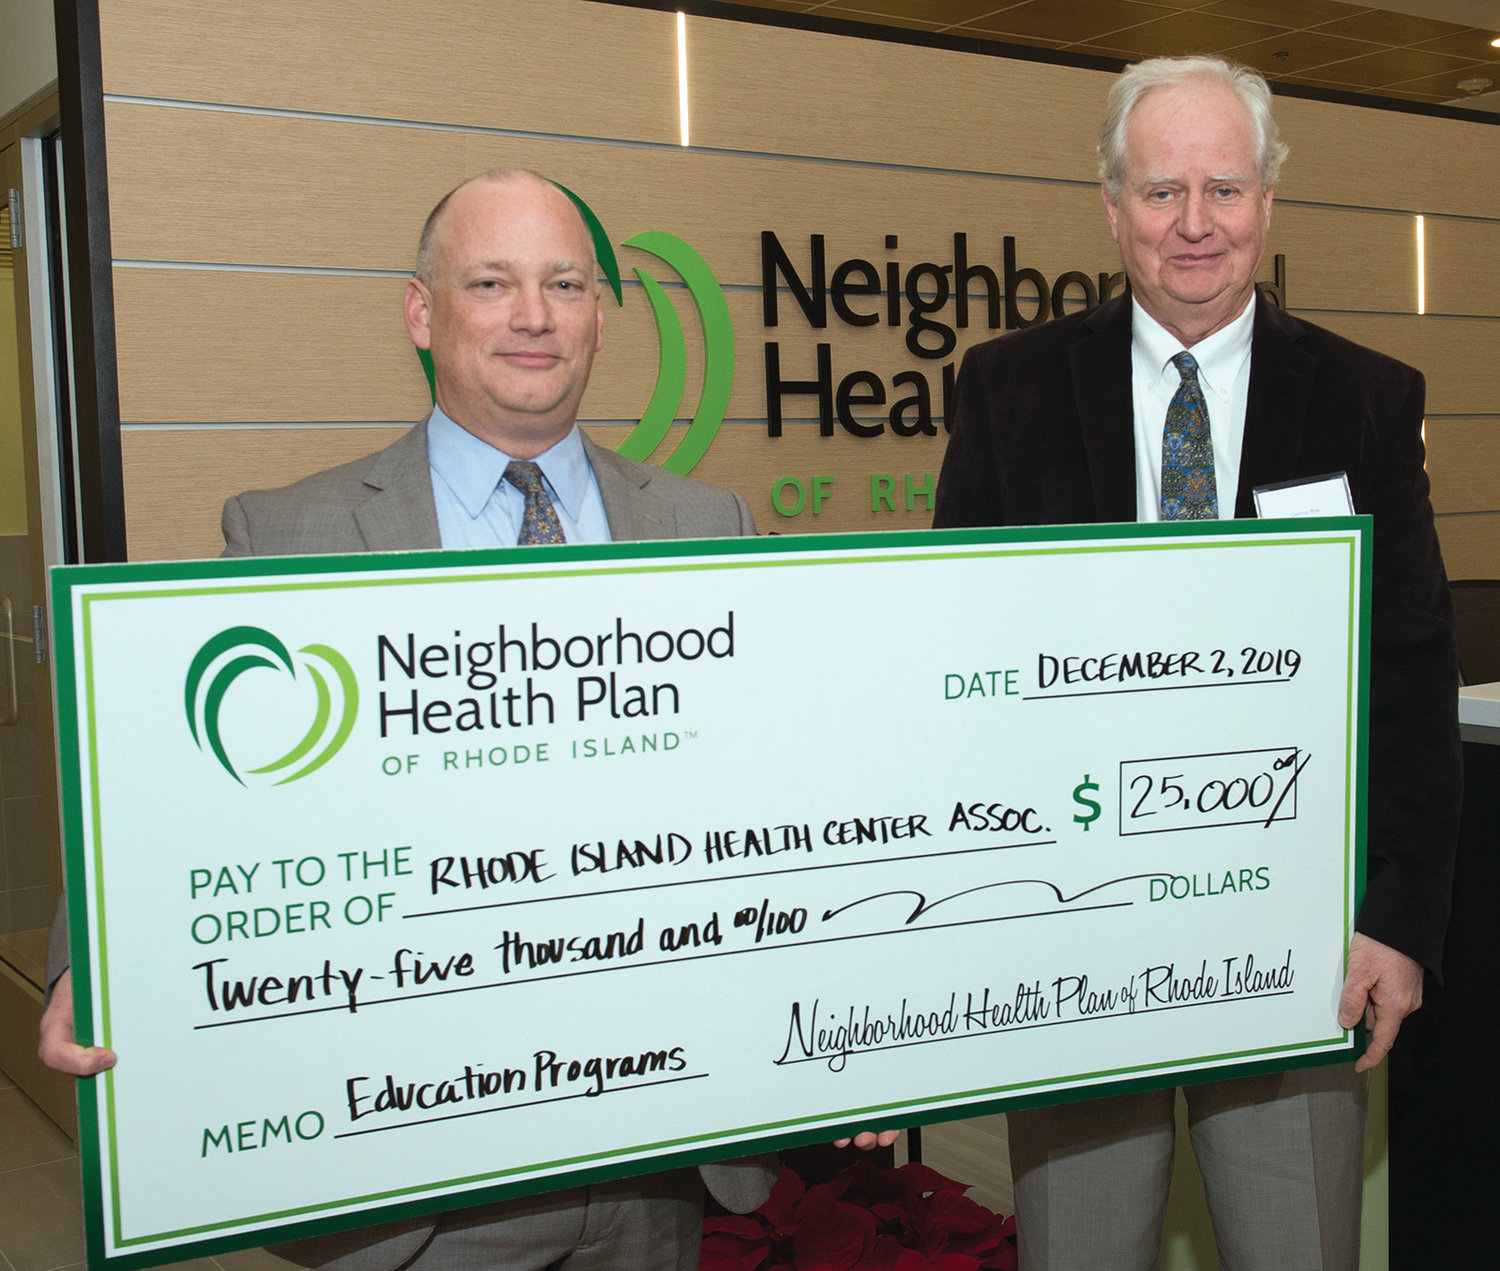 GENEROSITY ON DISPLAY: President and CEO Peter Marino (on left) presents a $25,000 check to Rhode Island Health Center Association (RIHCA) as the final donation of Neighborhood's 25th Anniversary Charitable Giving Program. Accepting the check on behalf of RIHCA is Dennis Roy, Neighborhood board member and president and CEO at East Bay Community Action Program. The donation will be used to fund education programming for the state's community health centers.